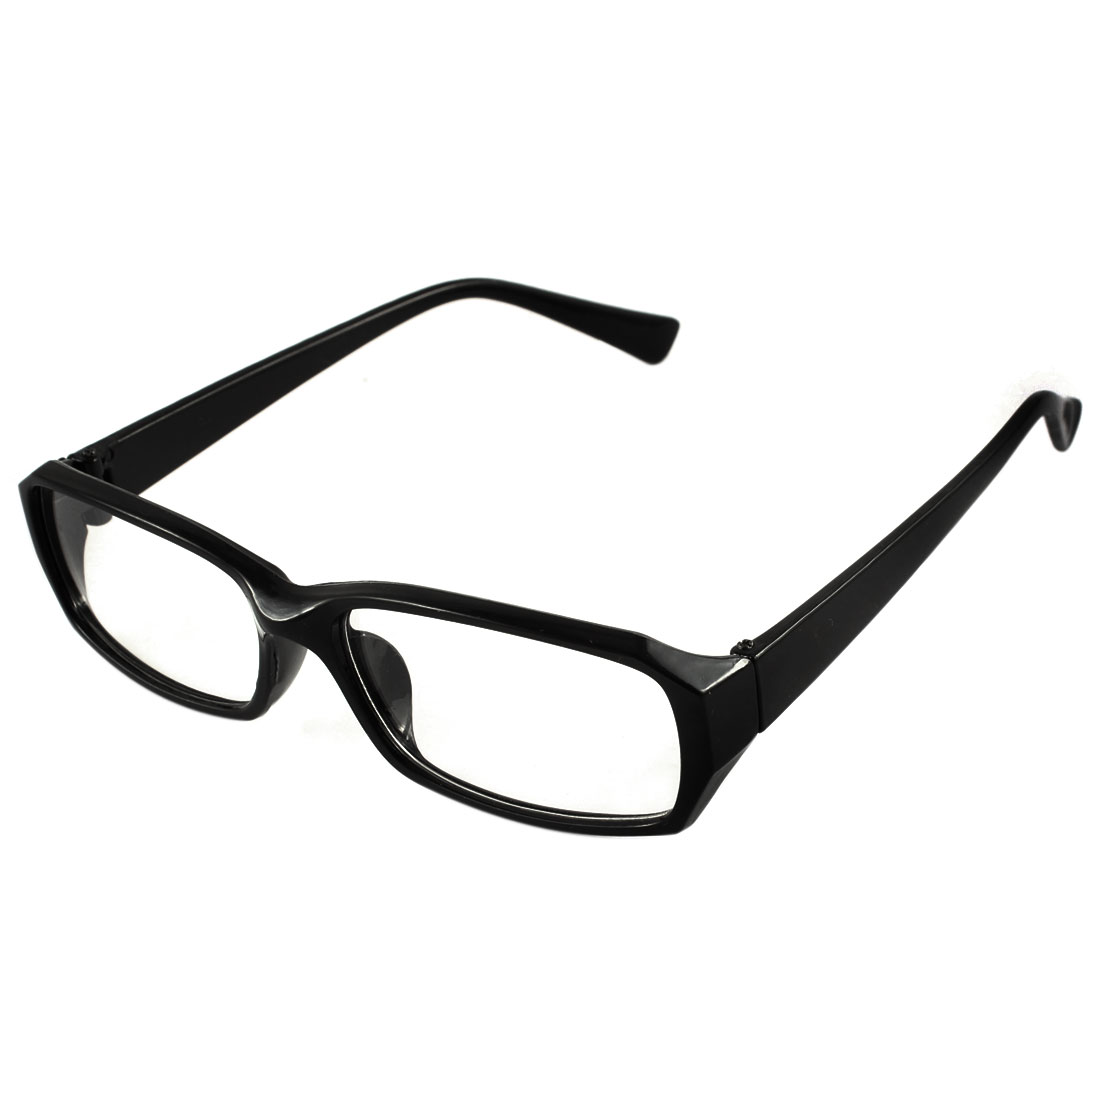 Unisex Chic Eyeglasses Glasses Eyewear Plain Rectangular Spectacle Frame Black